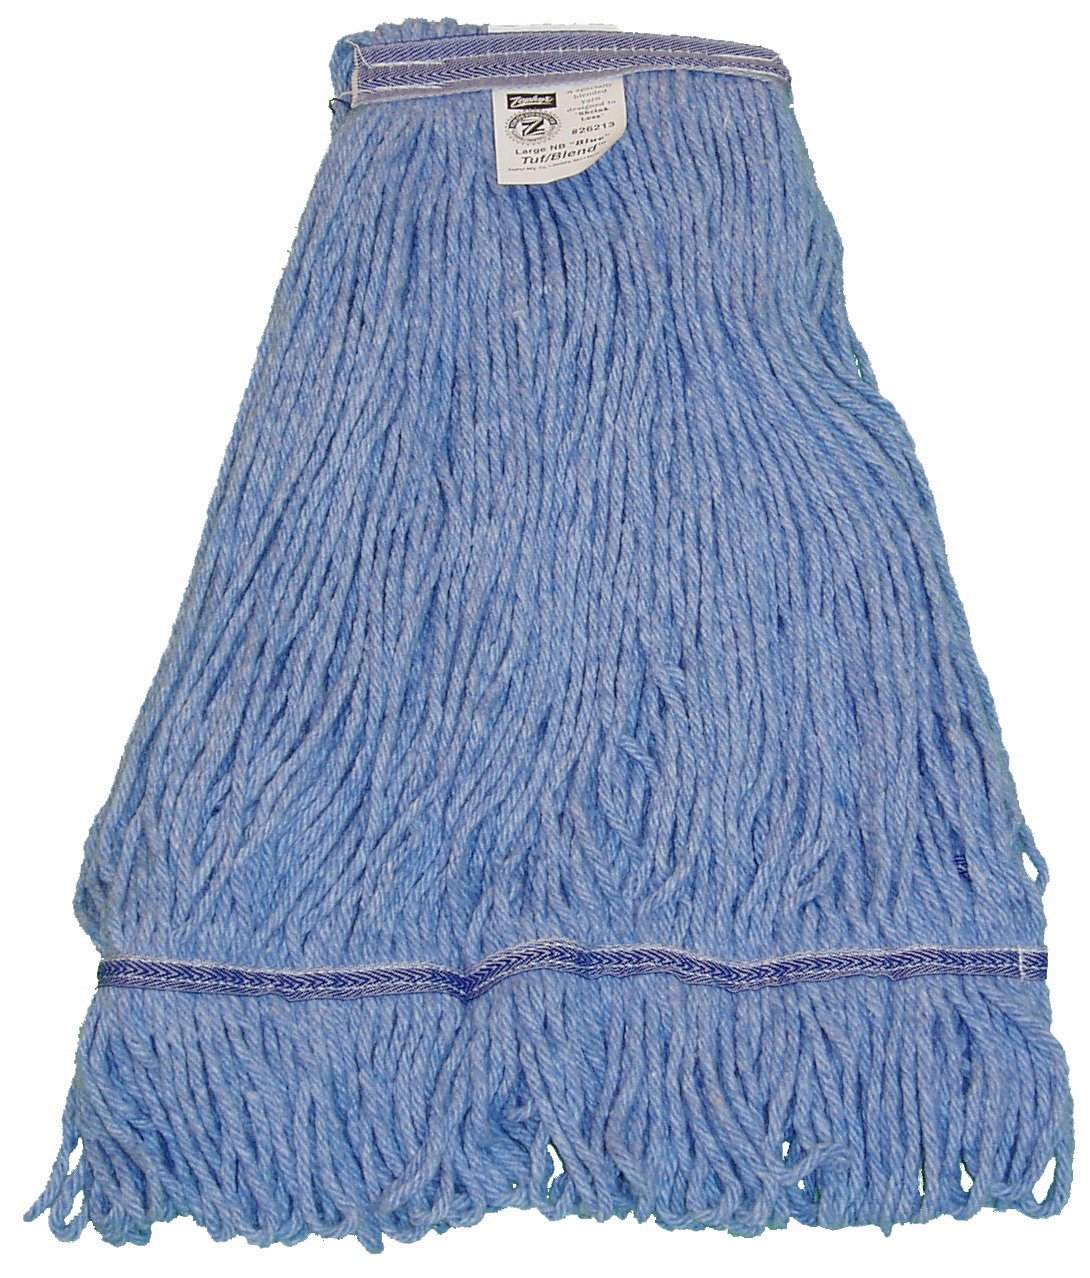 Zephyr 28258 HC/Blend Blue 4-Ply Yarn X-large Health Care Loop Mop Head with 1-1/4'' Narrow Headband (Pack of 12)